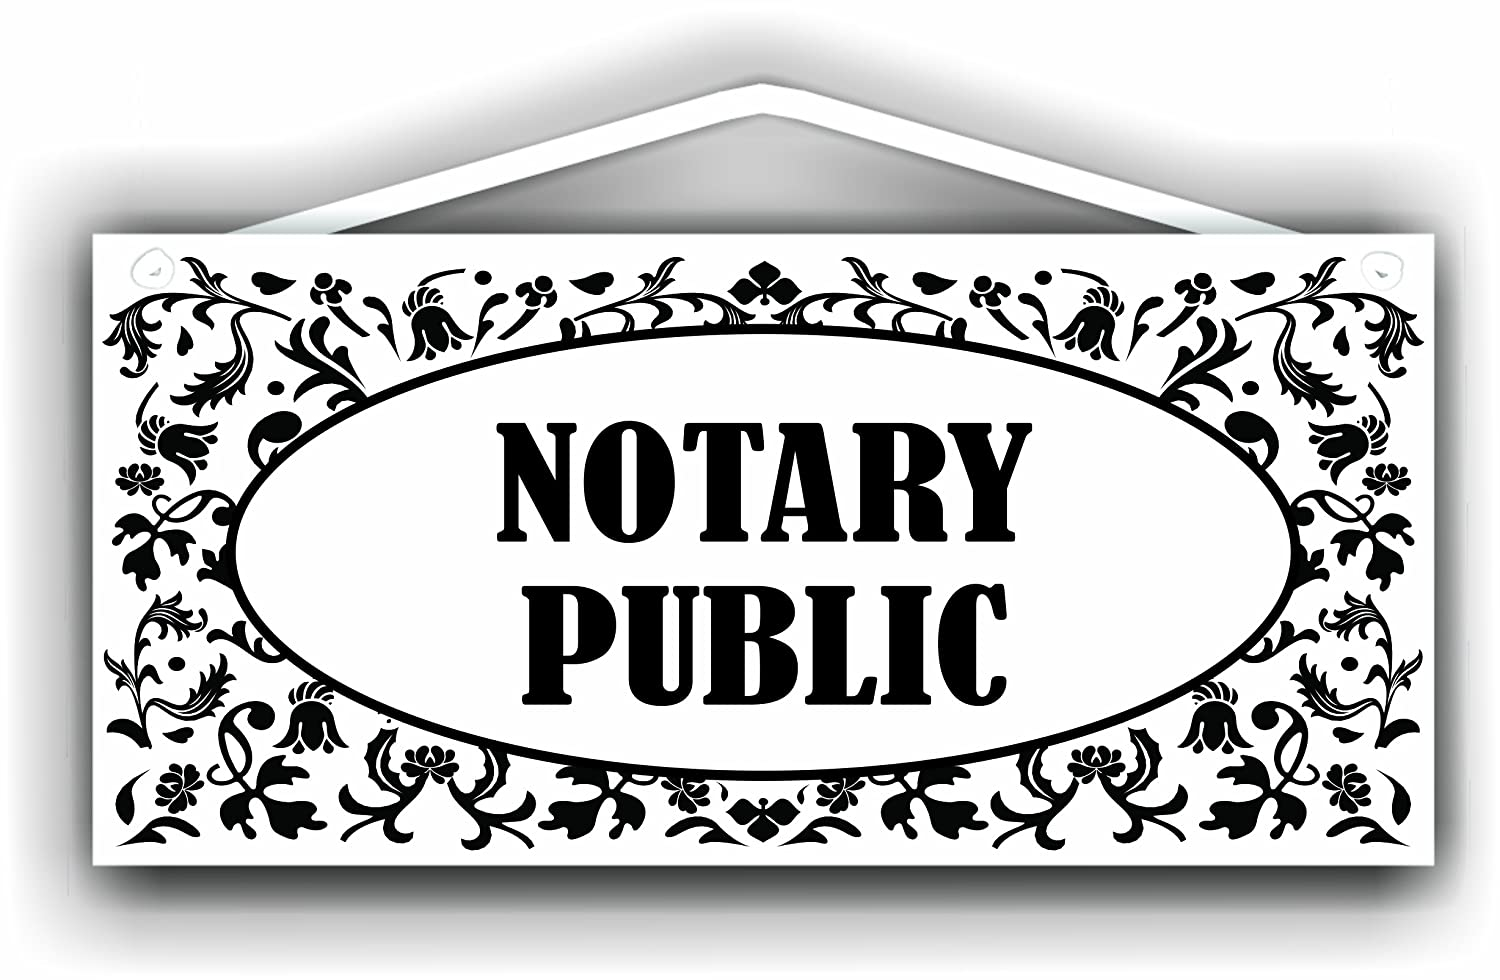 amazon com notary public sign for indoor or outdoor use by